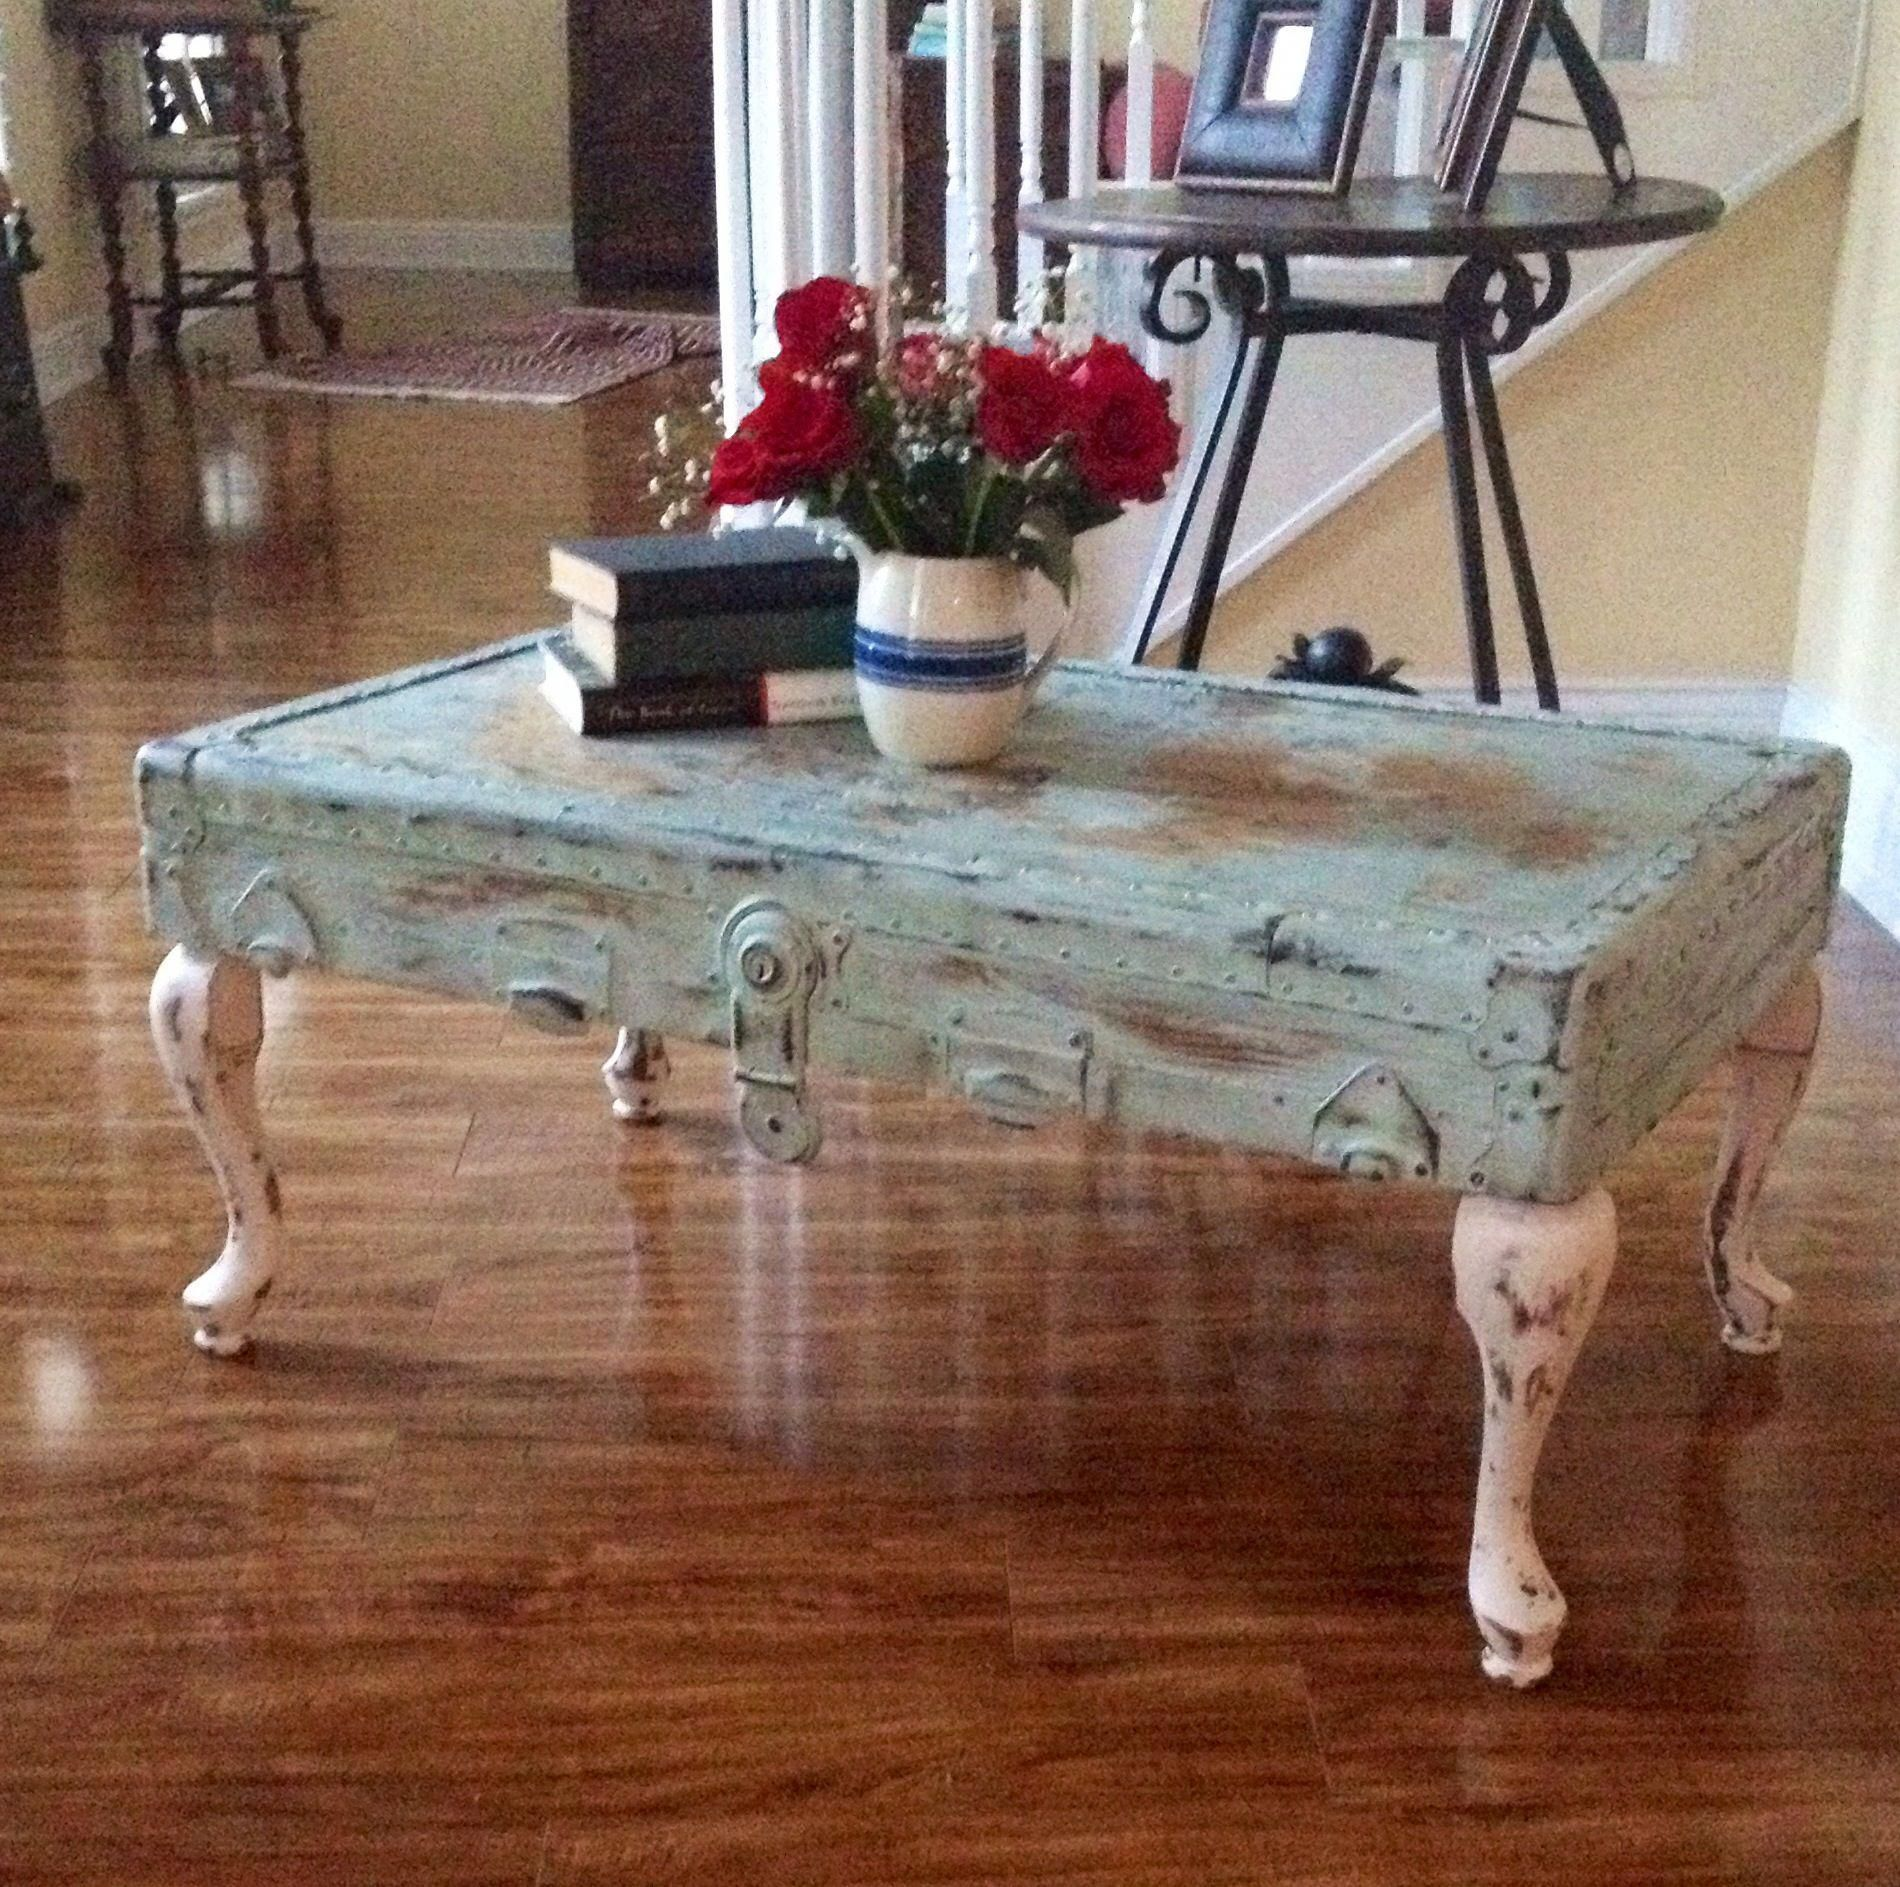 27 Unique Desks And Coffee Tables Materialized In Highly Creative Diy Projects Shabby Chic Coffee Table Chic Coffee Table Shabby Chic Dresser [ 1887 x 1900 Pixel ]